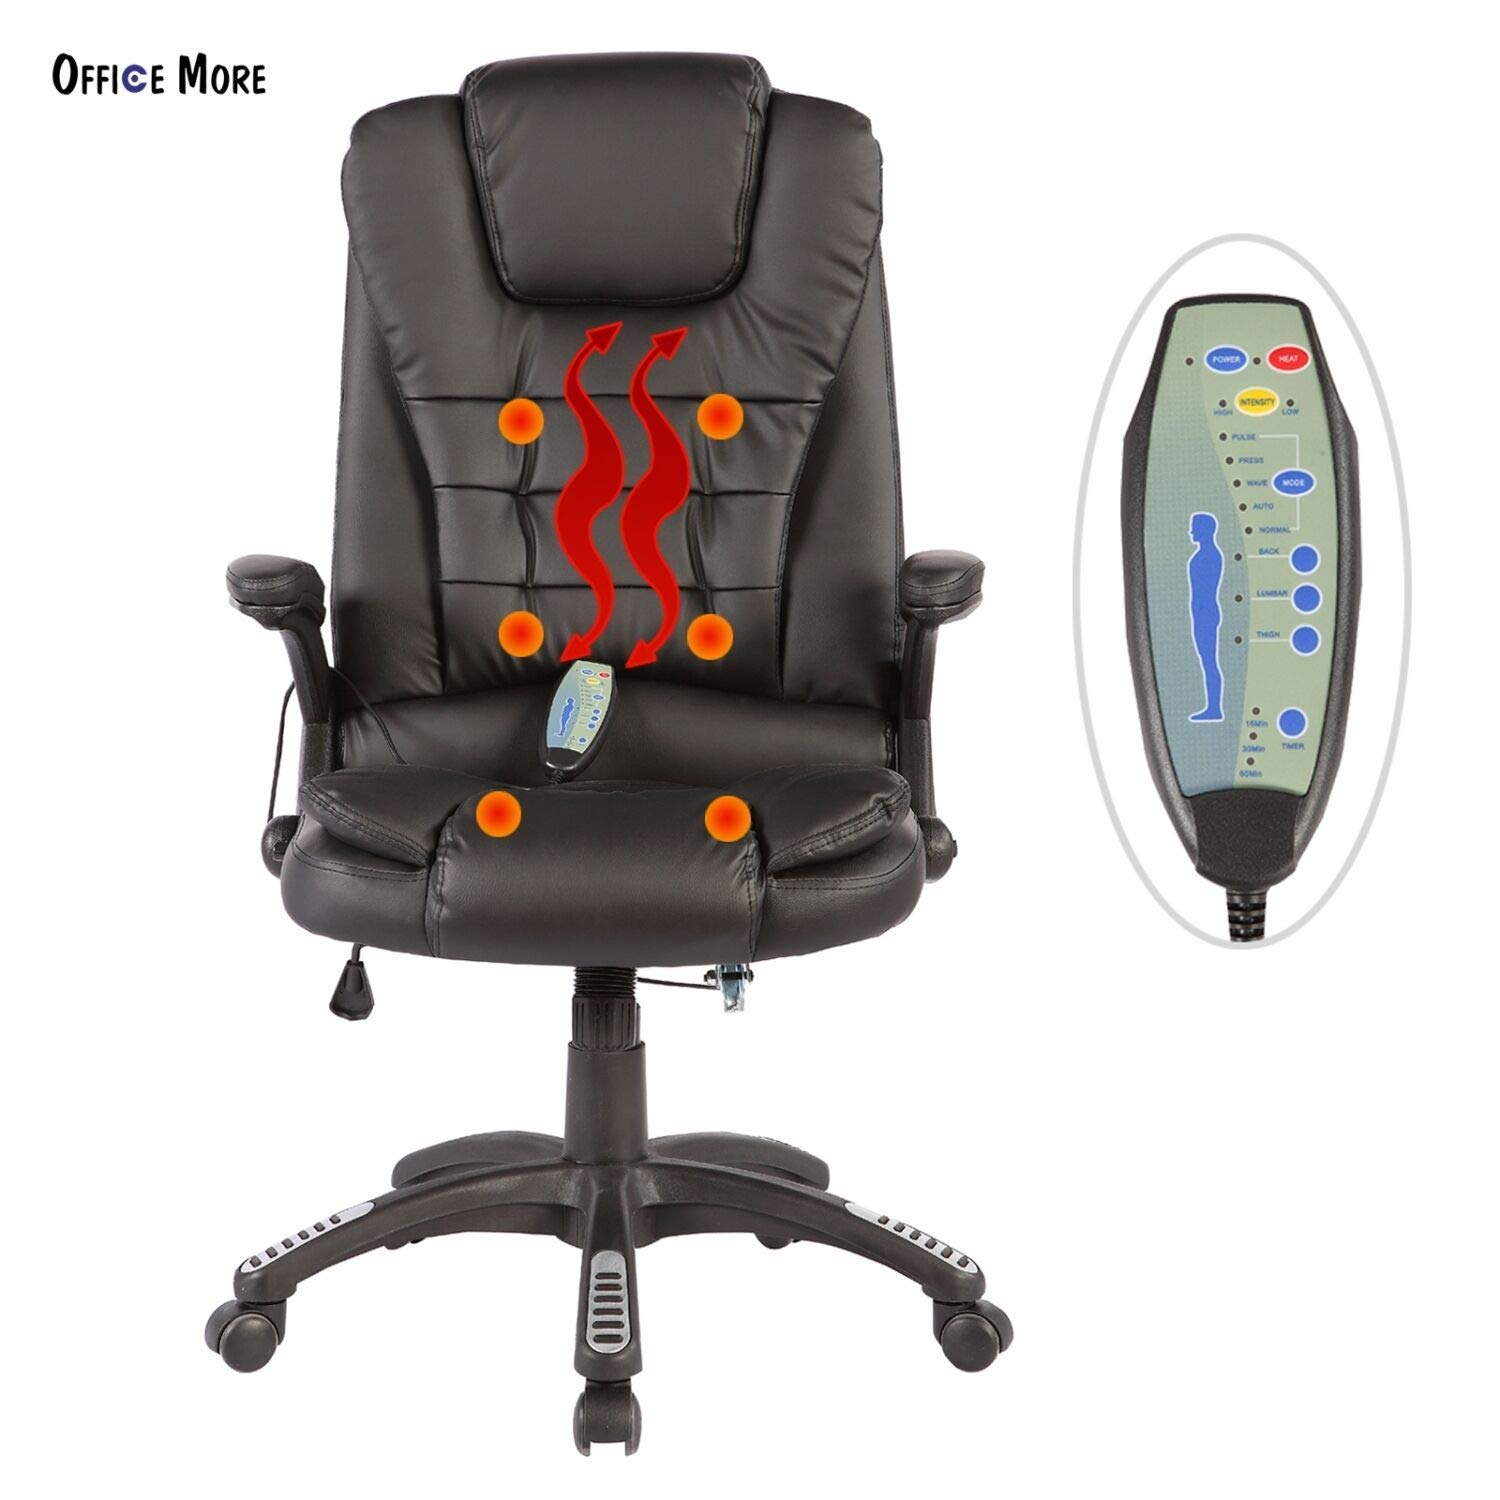 Black Massage Chair Office Swivel Executive Ergonomic Heated Vibrating Leather Chair, Remote Control 6-Point Massage, Adjustable Seat Height & Position